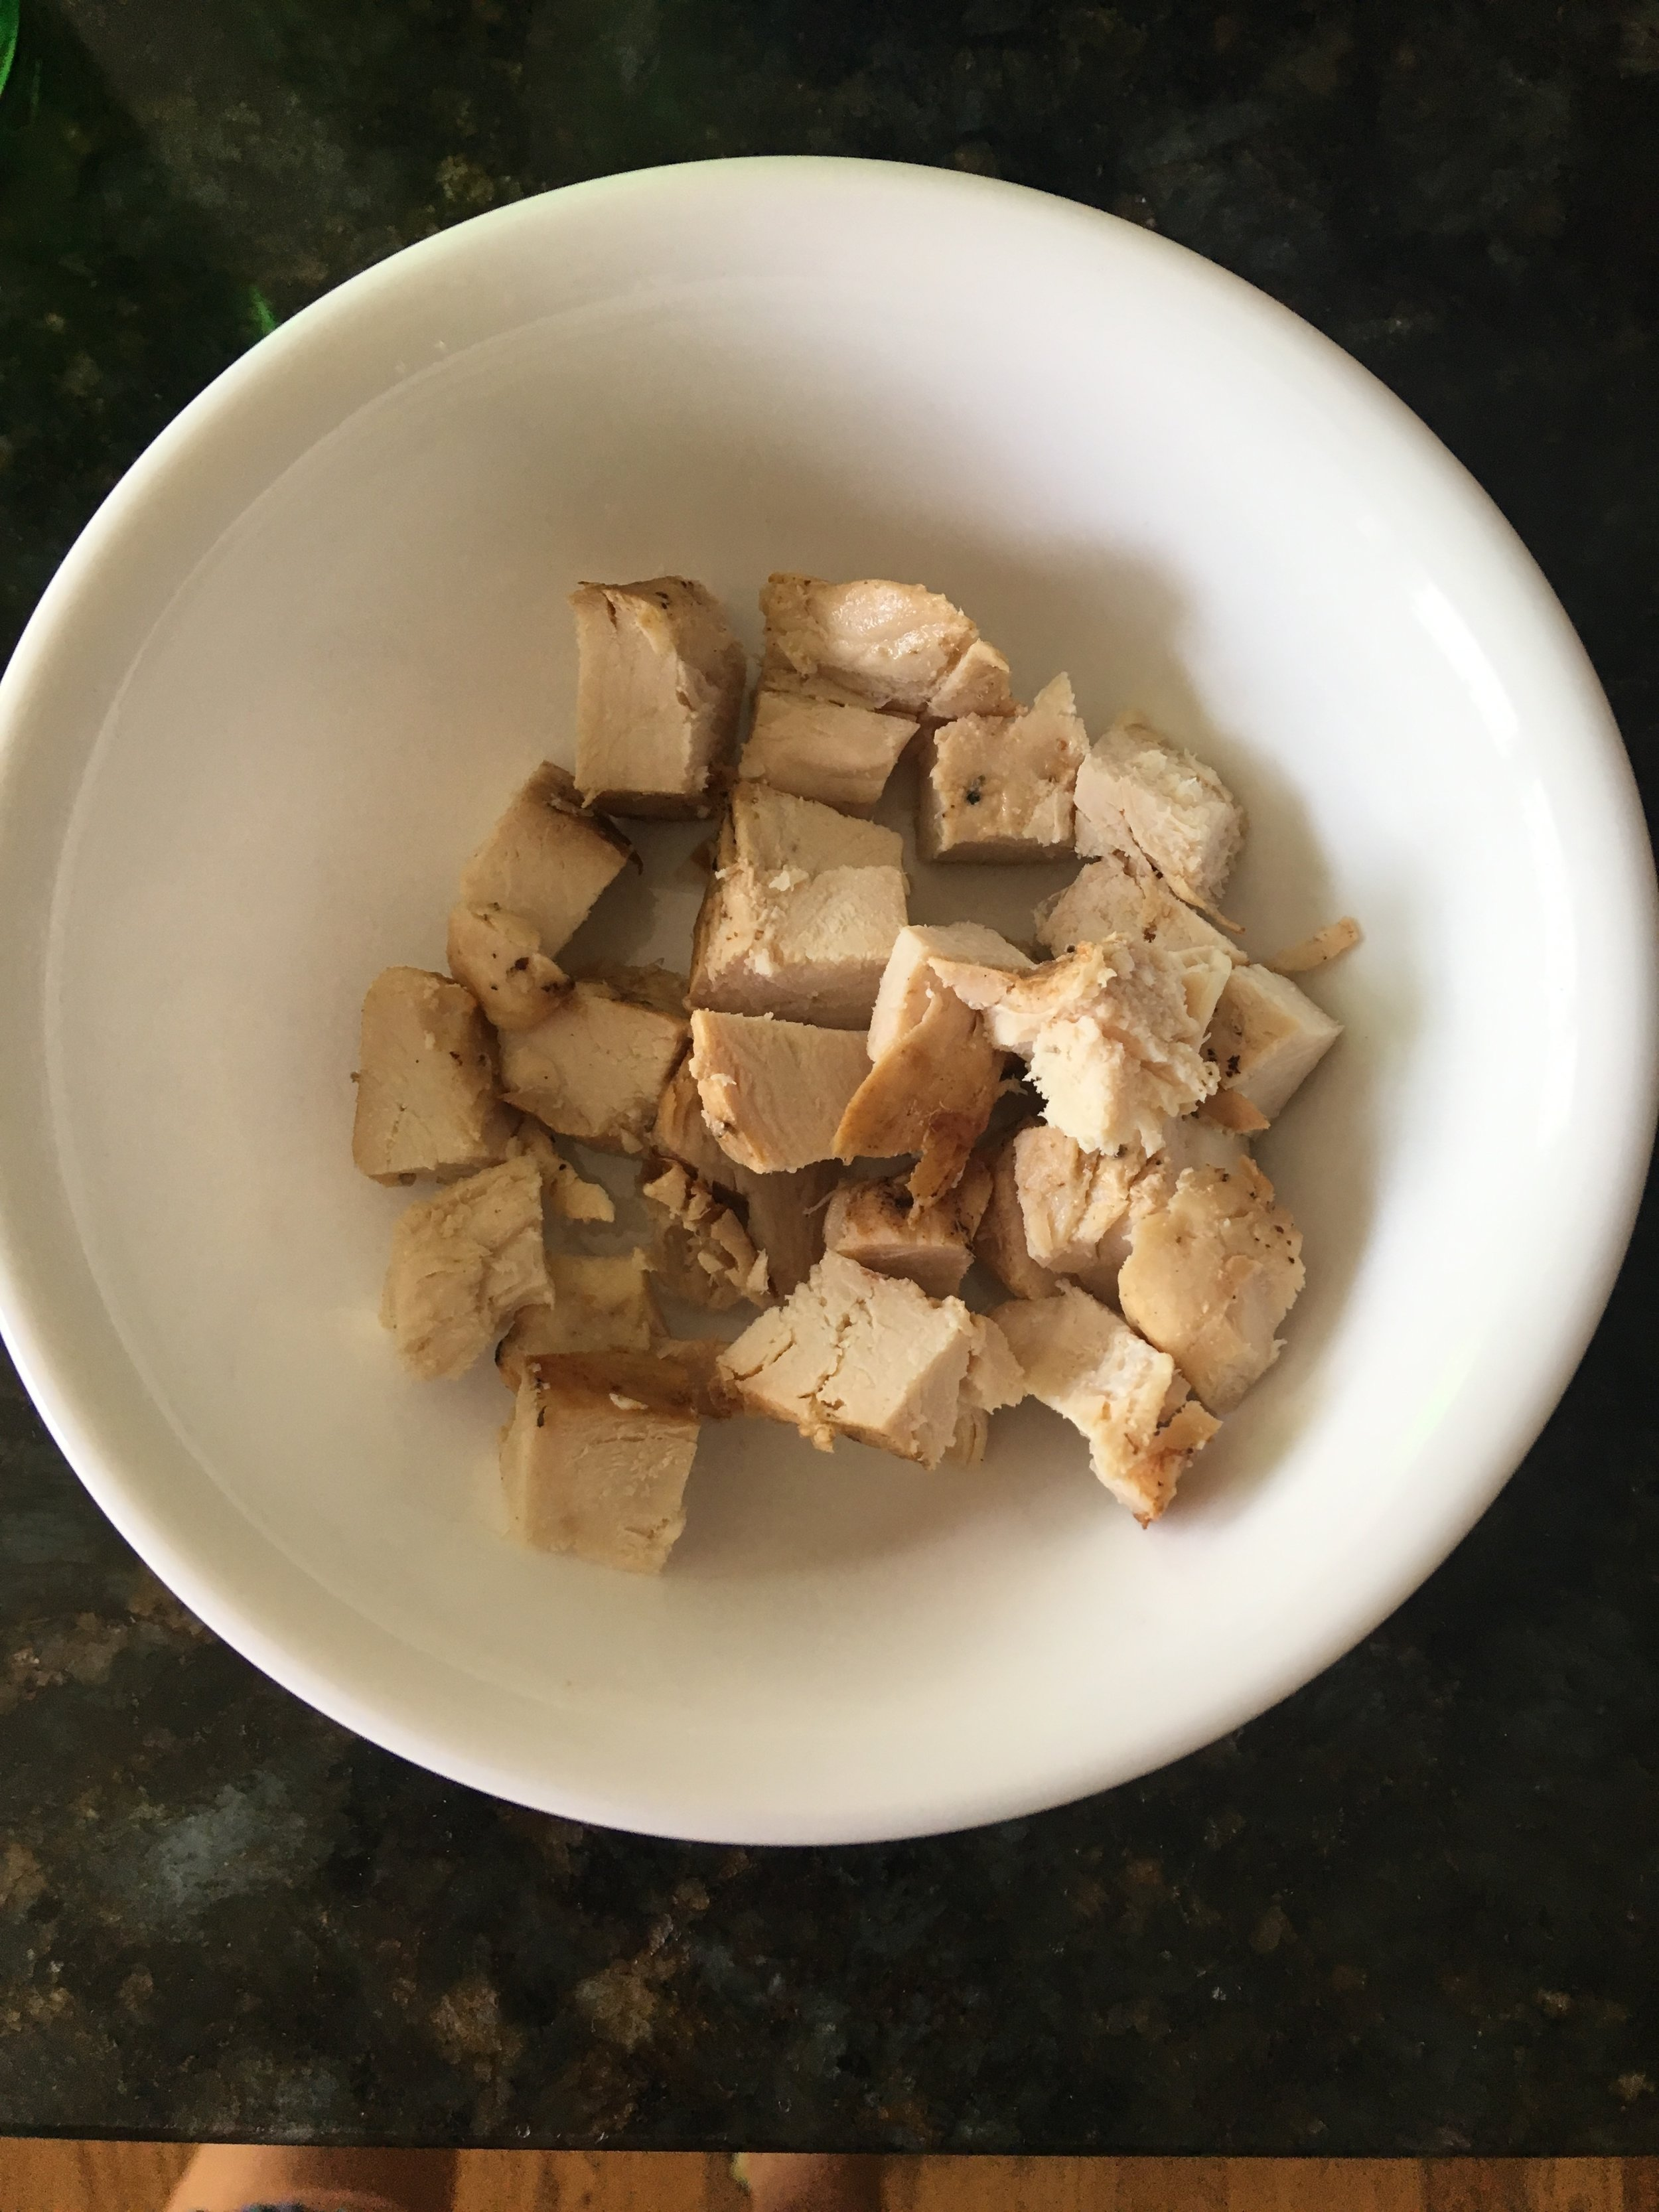 Step 1 - Place chopped chicken (2-3 ounces) in a bowl.